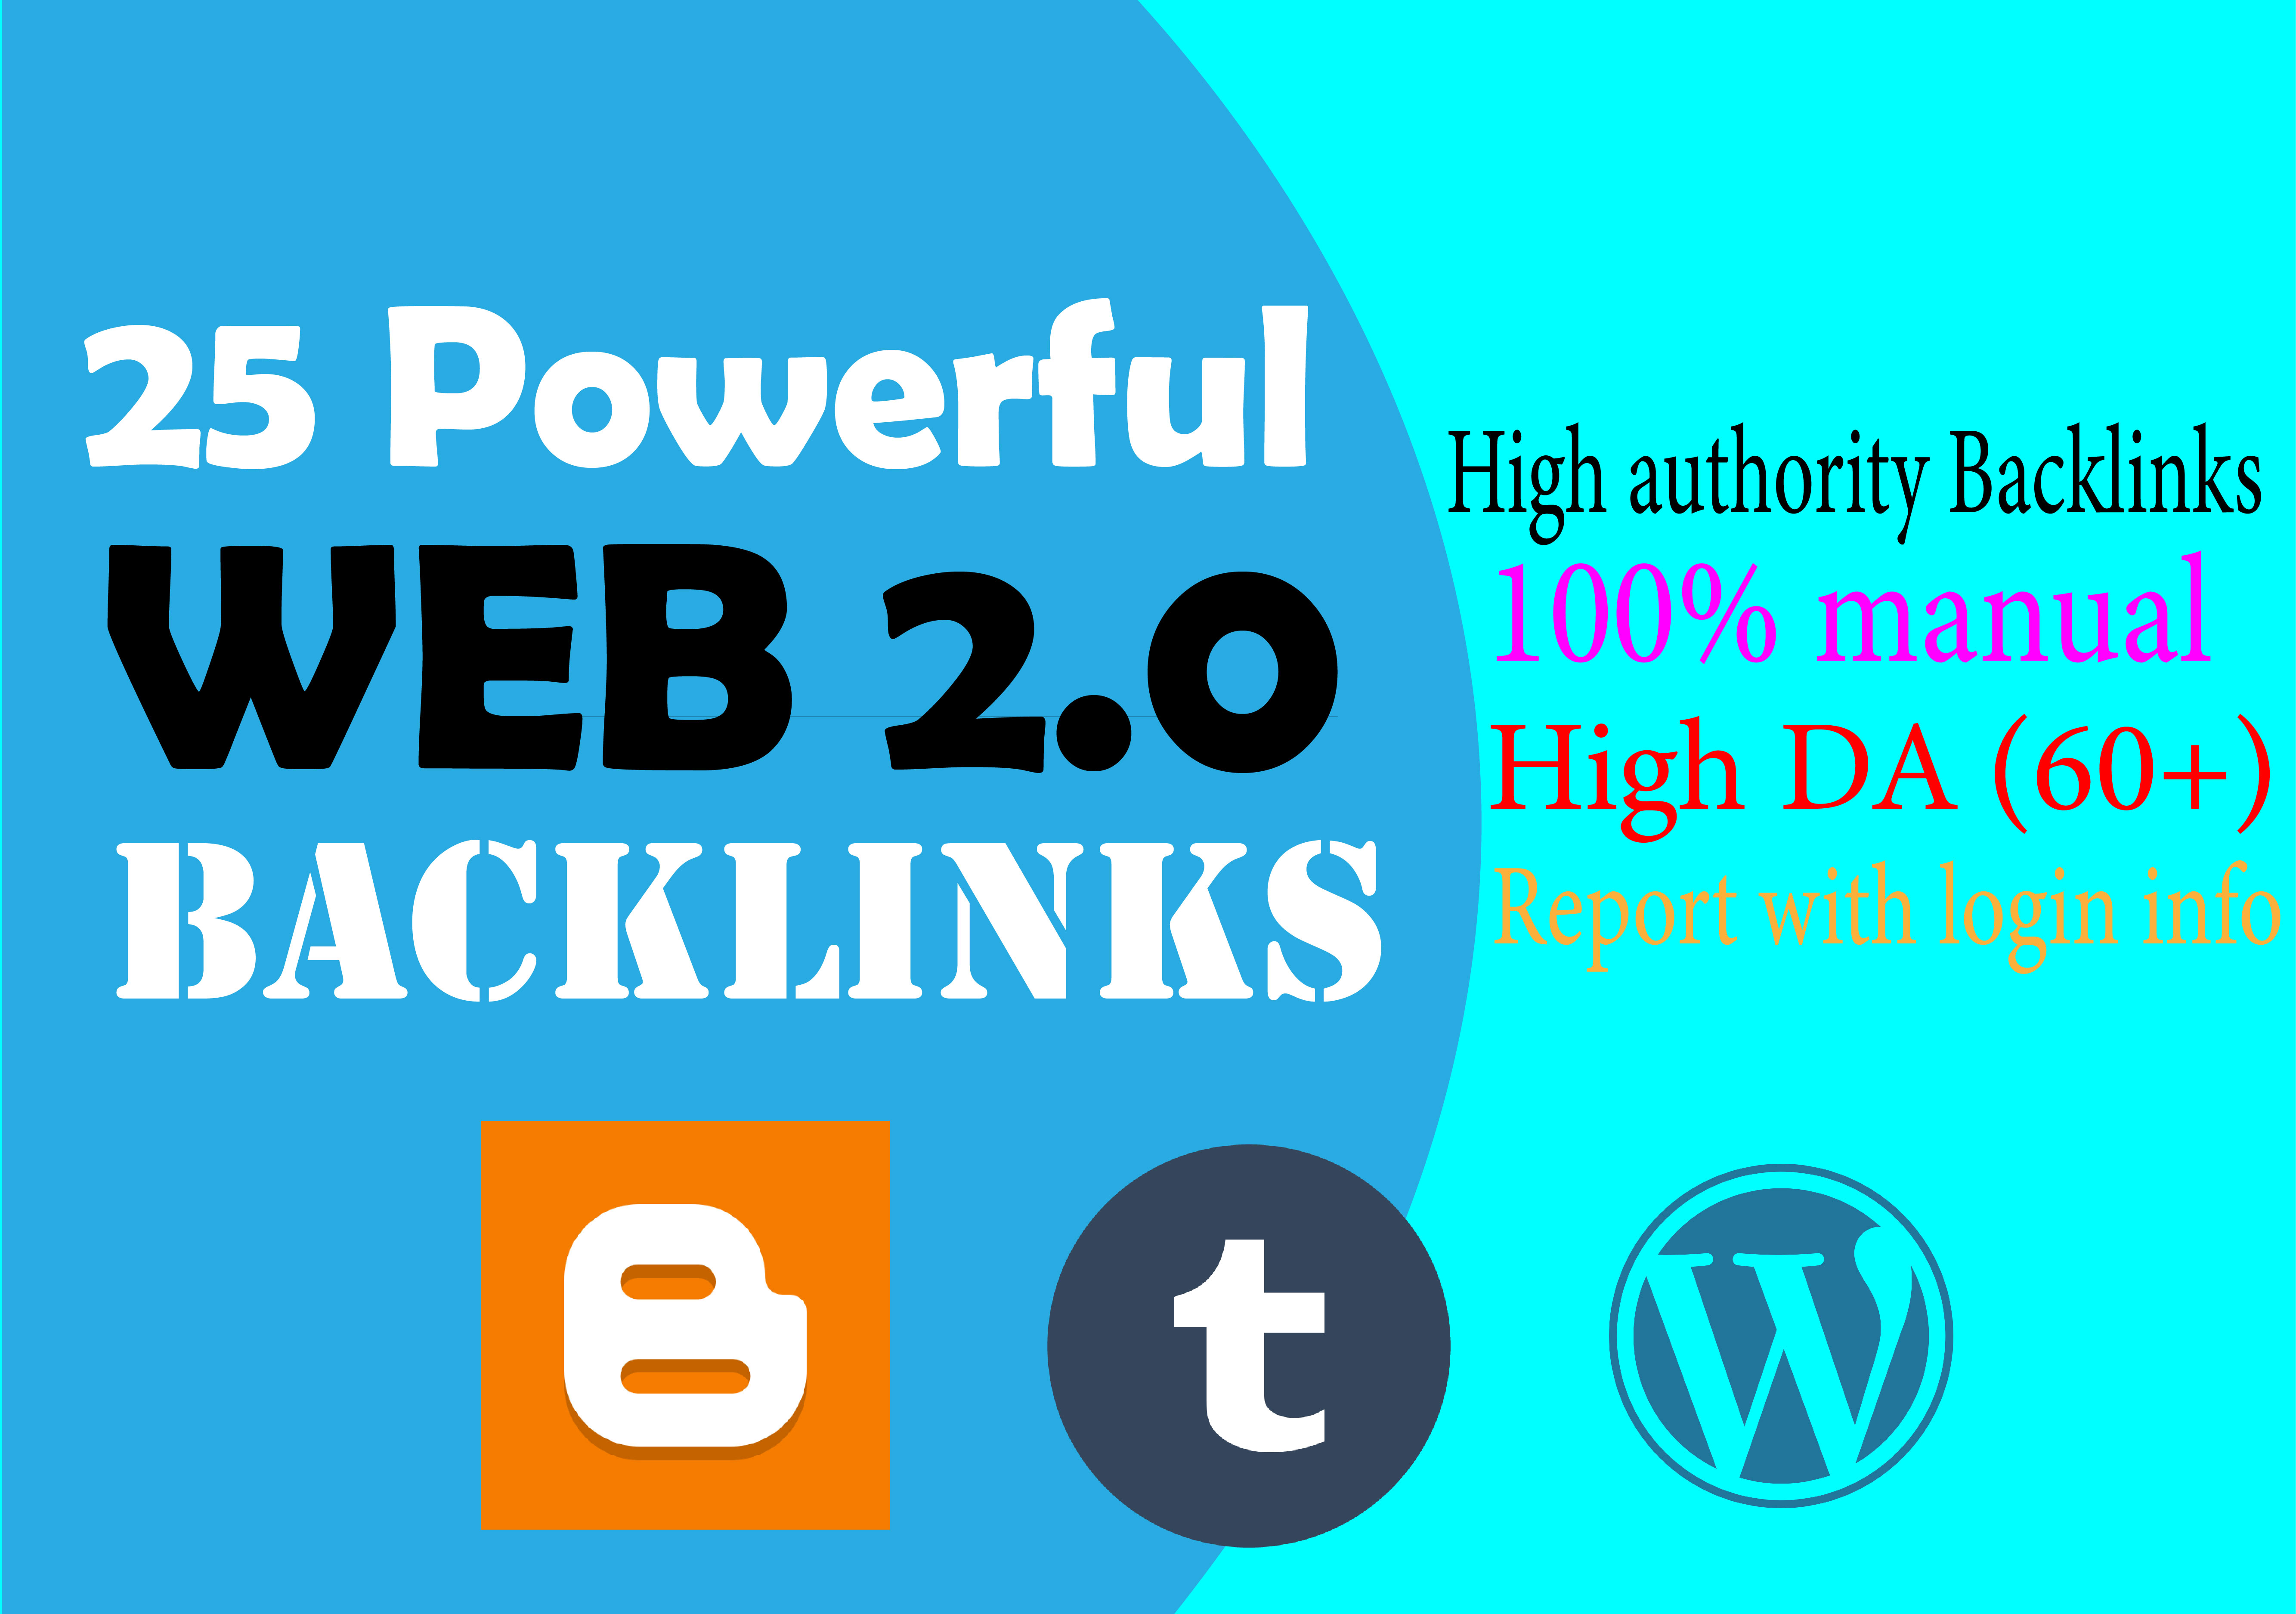 I will do 25 High DA Web 2.0 Backlinks to rank at Google First page.